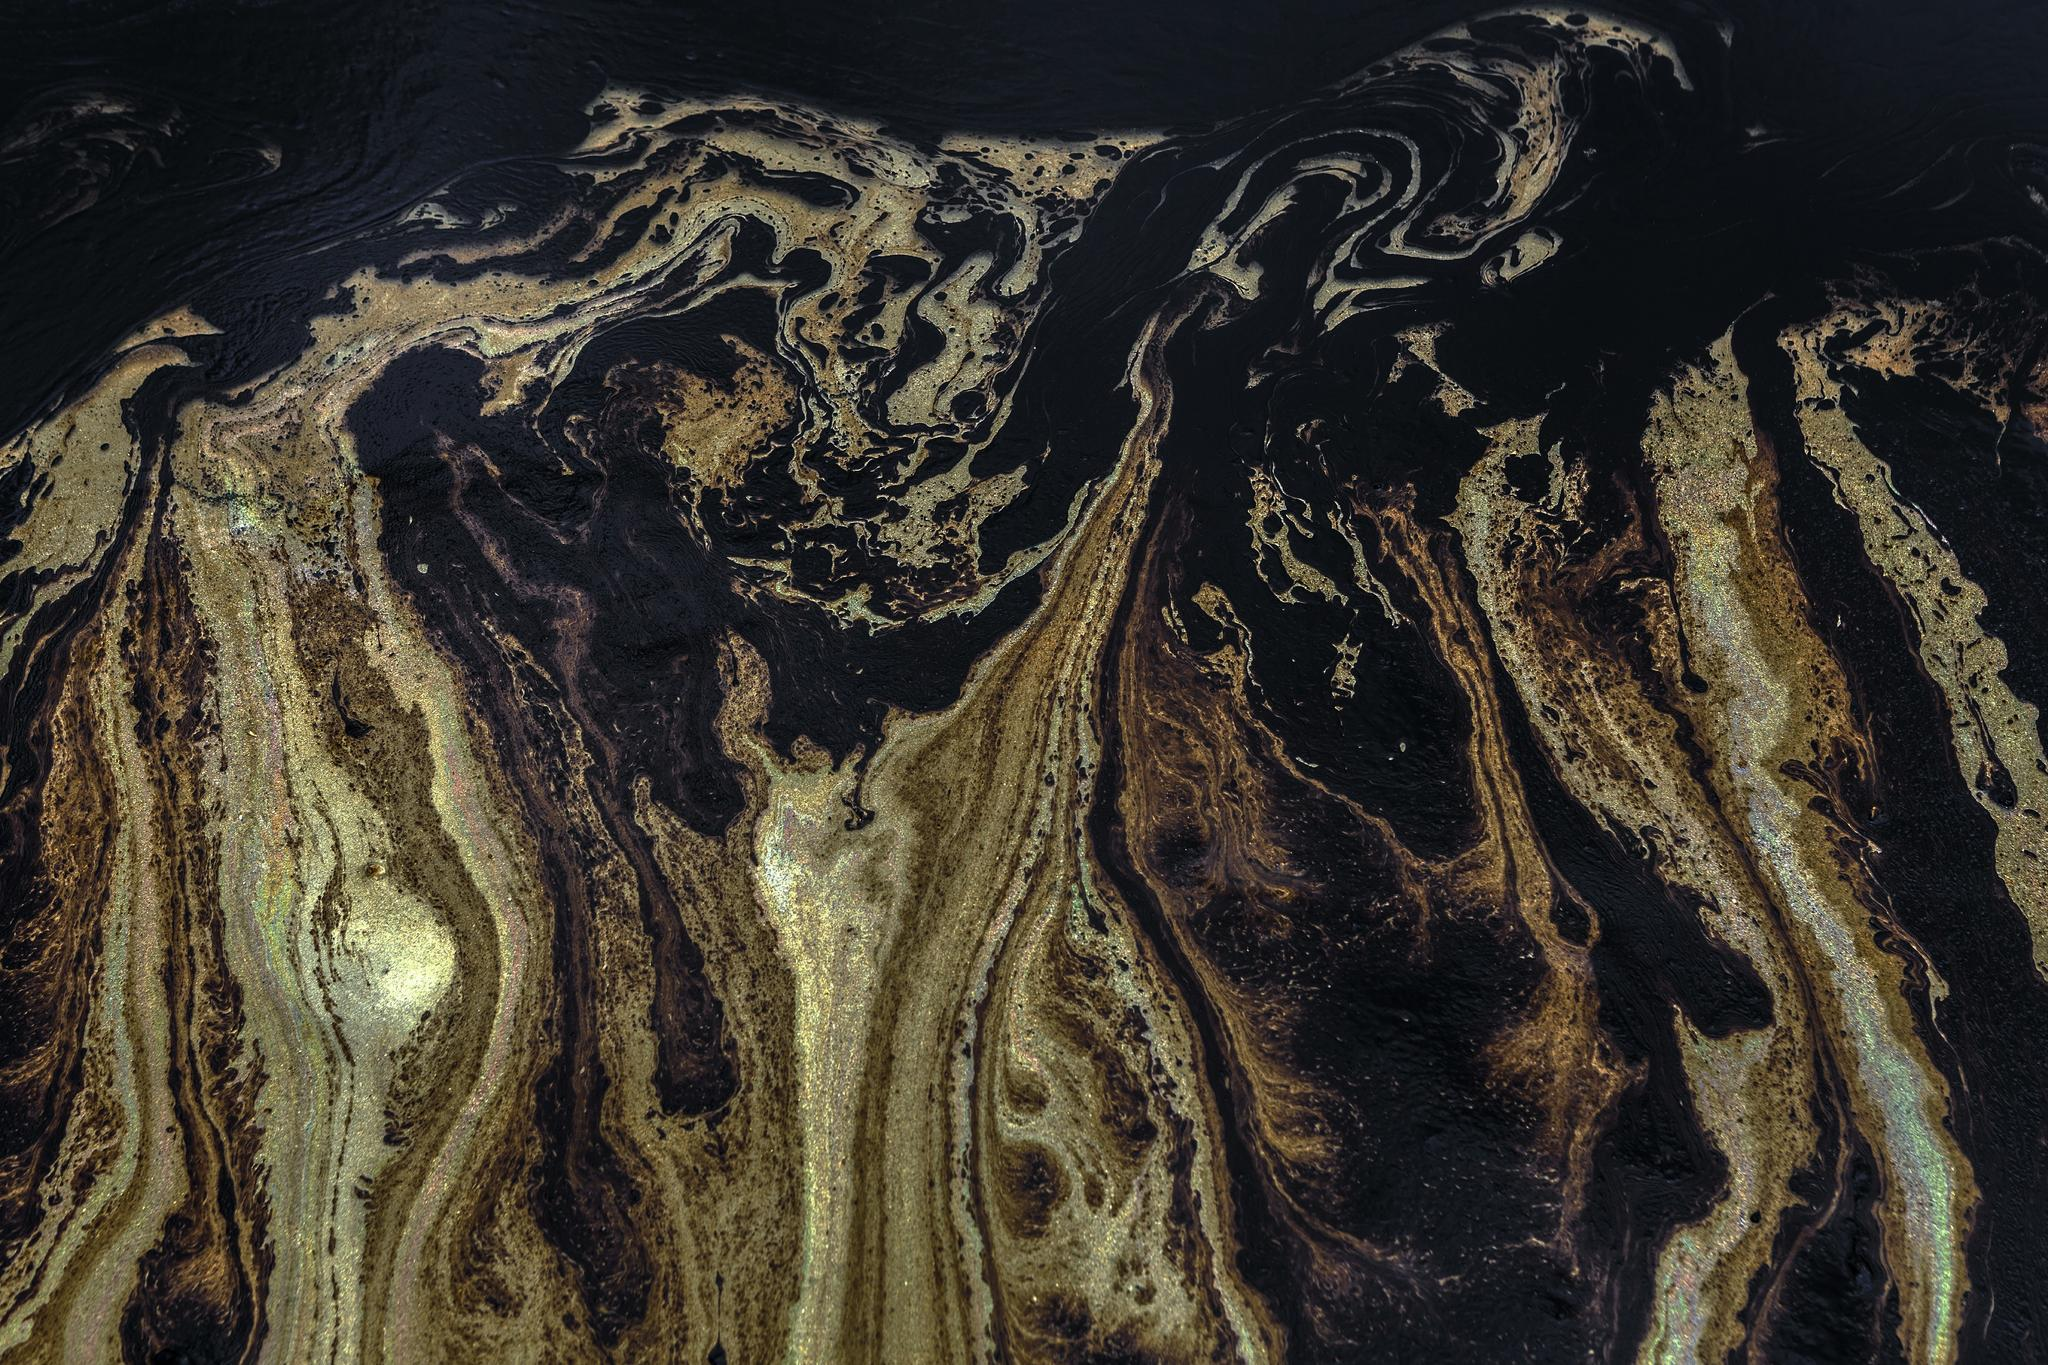 black gold oil slick contamination expo